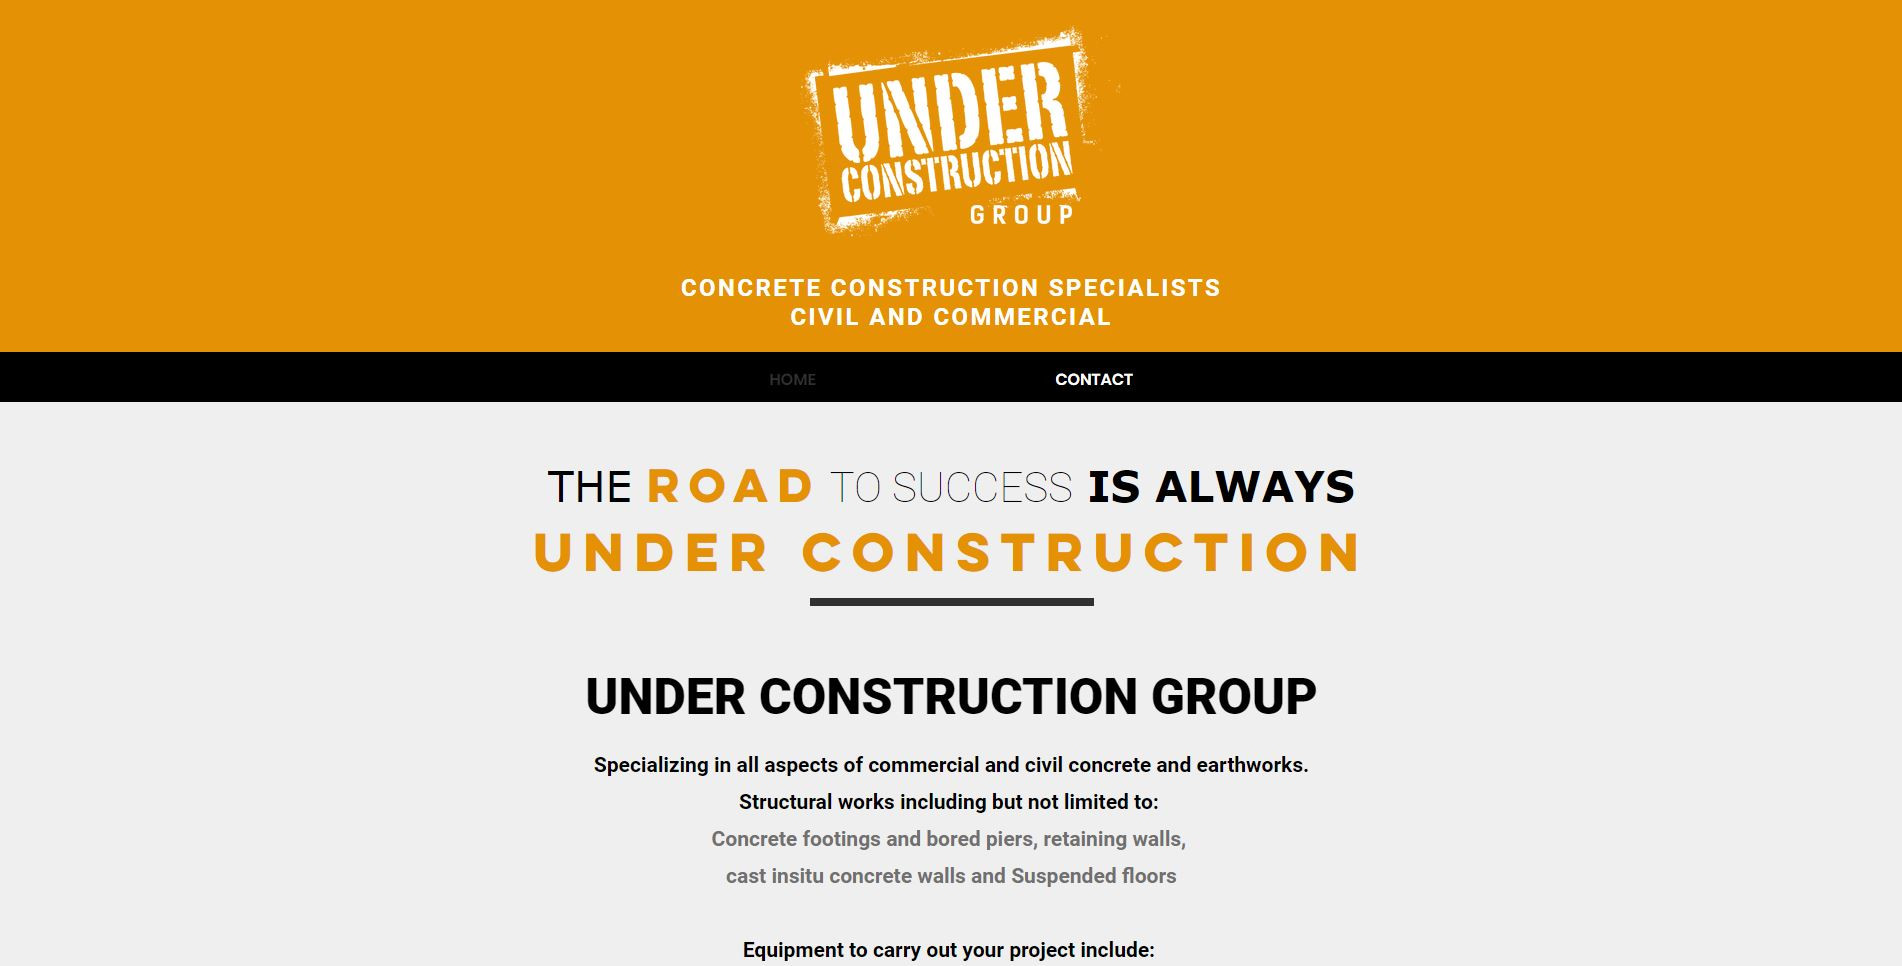 Under Construction Group